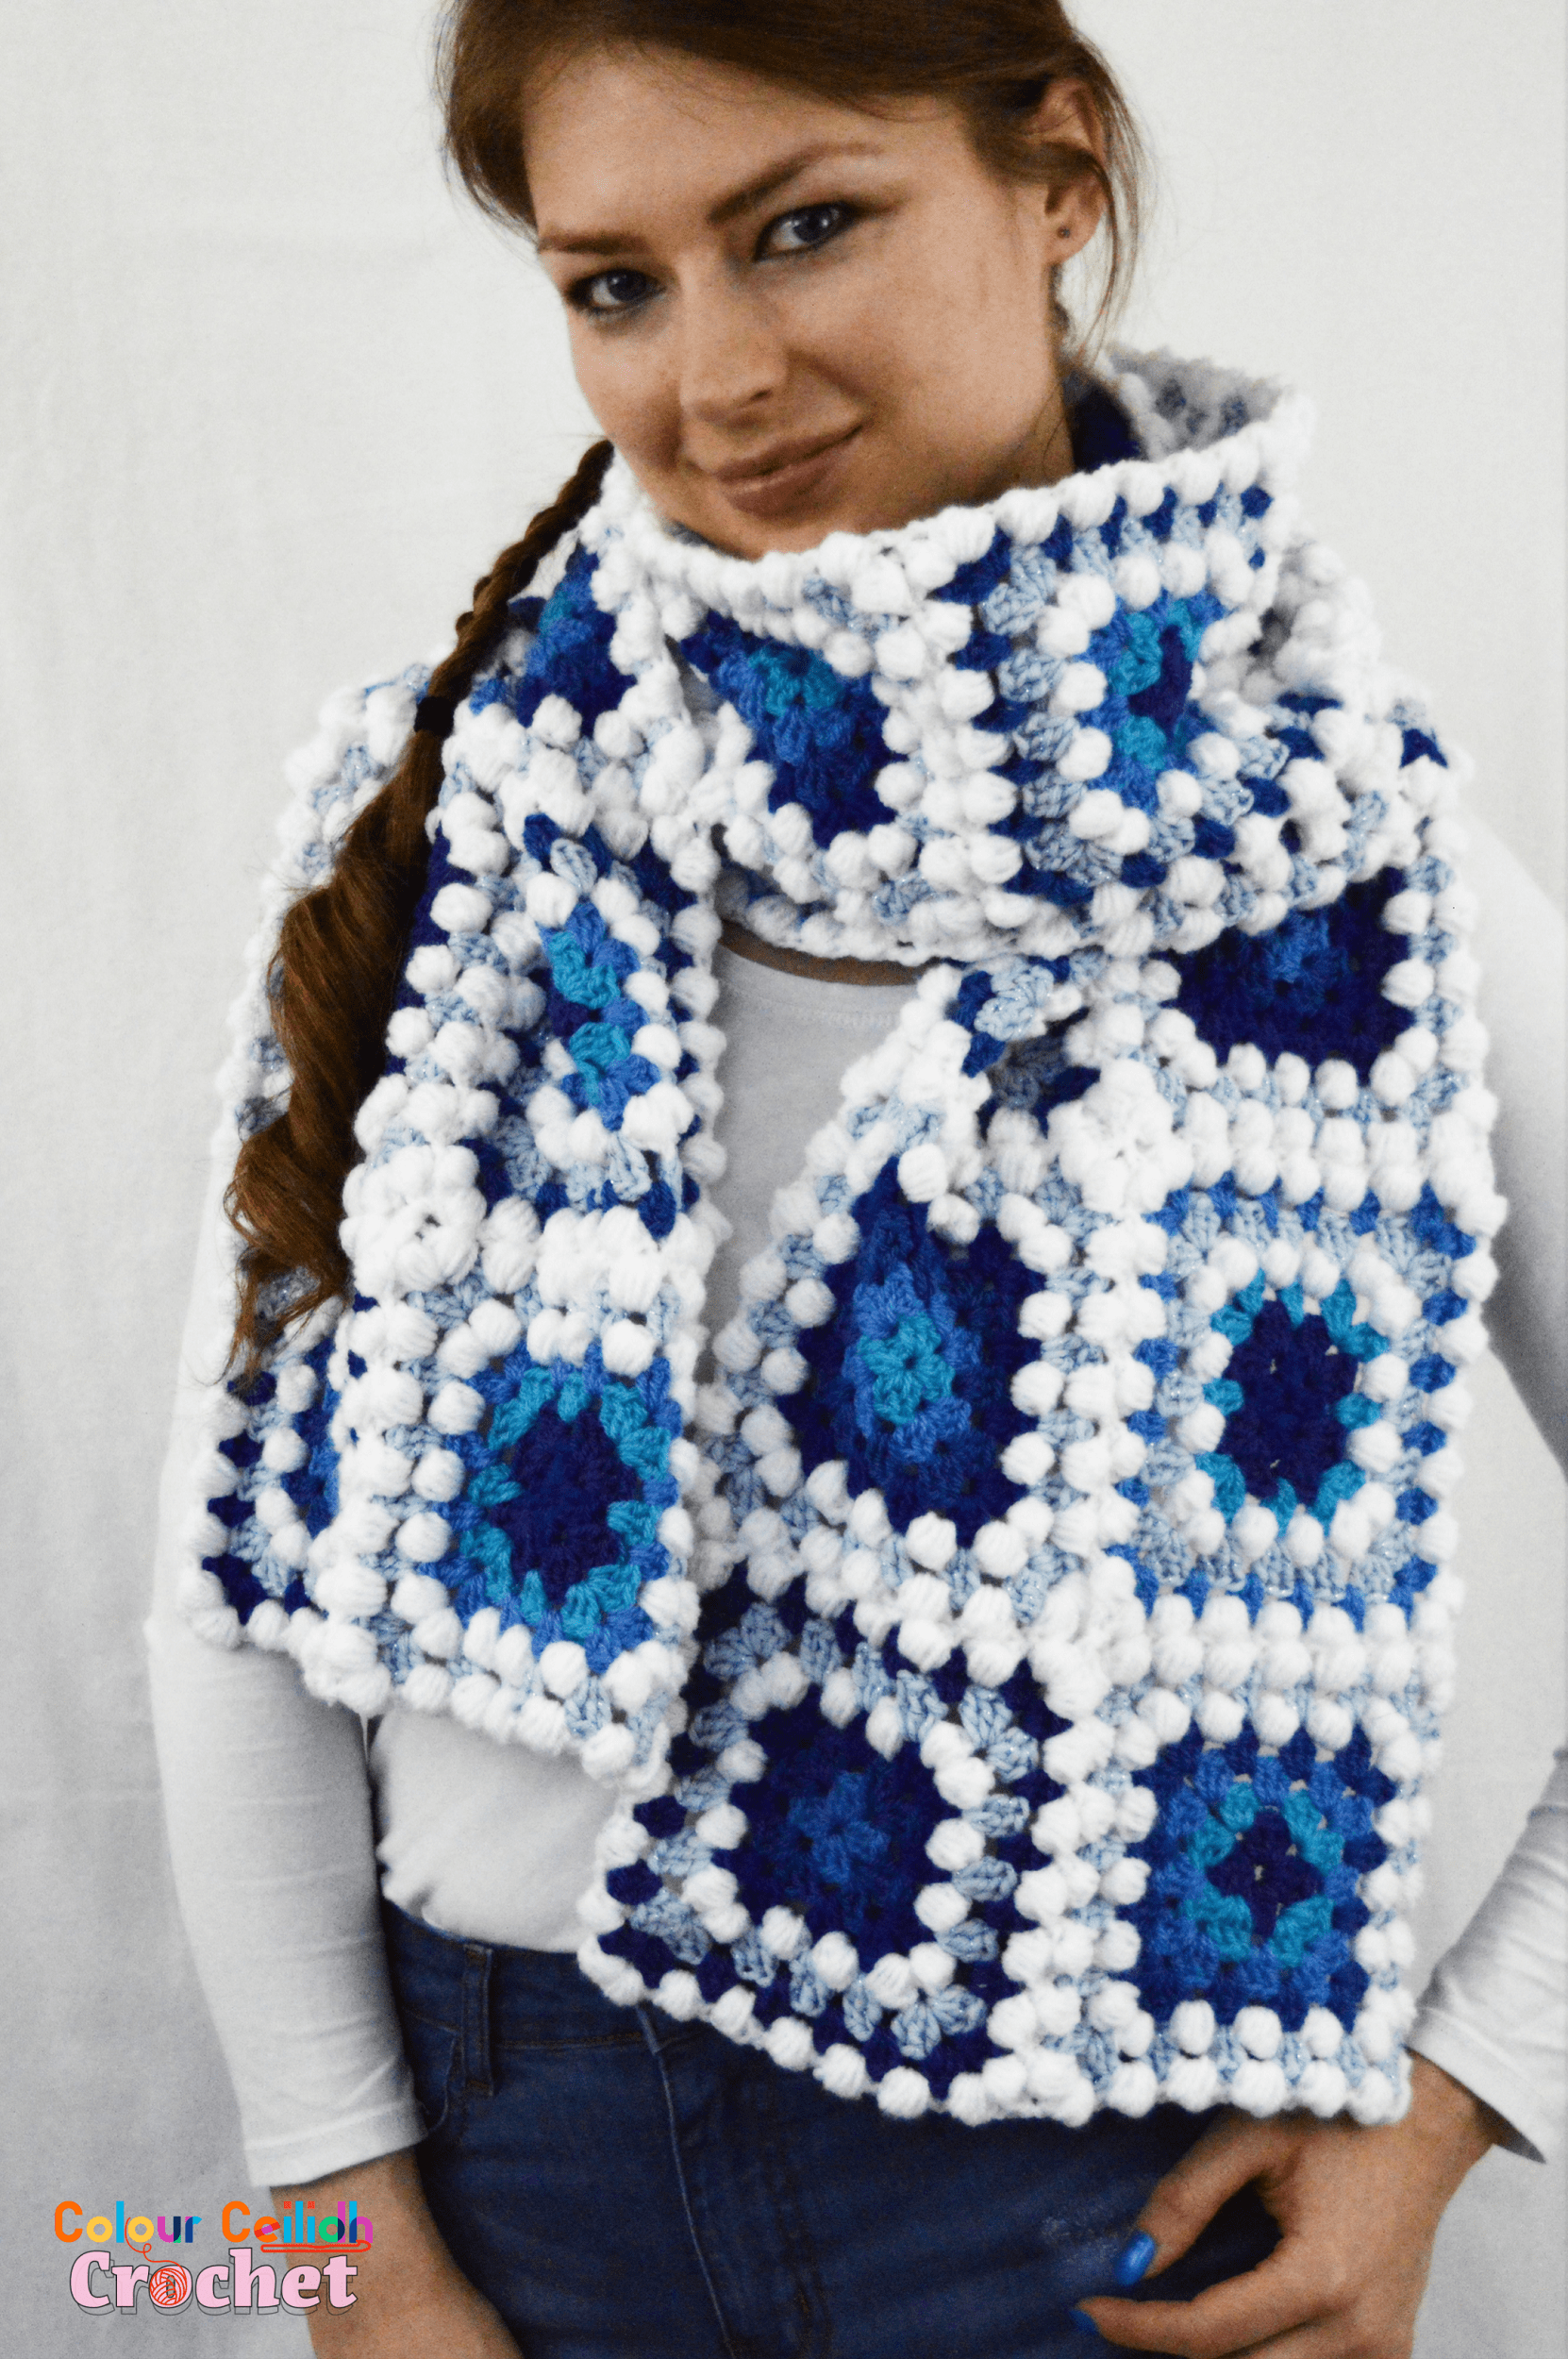 Granny square scarf icy blues free crochet pattern